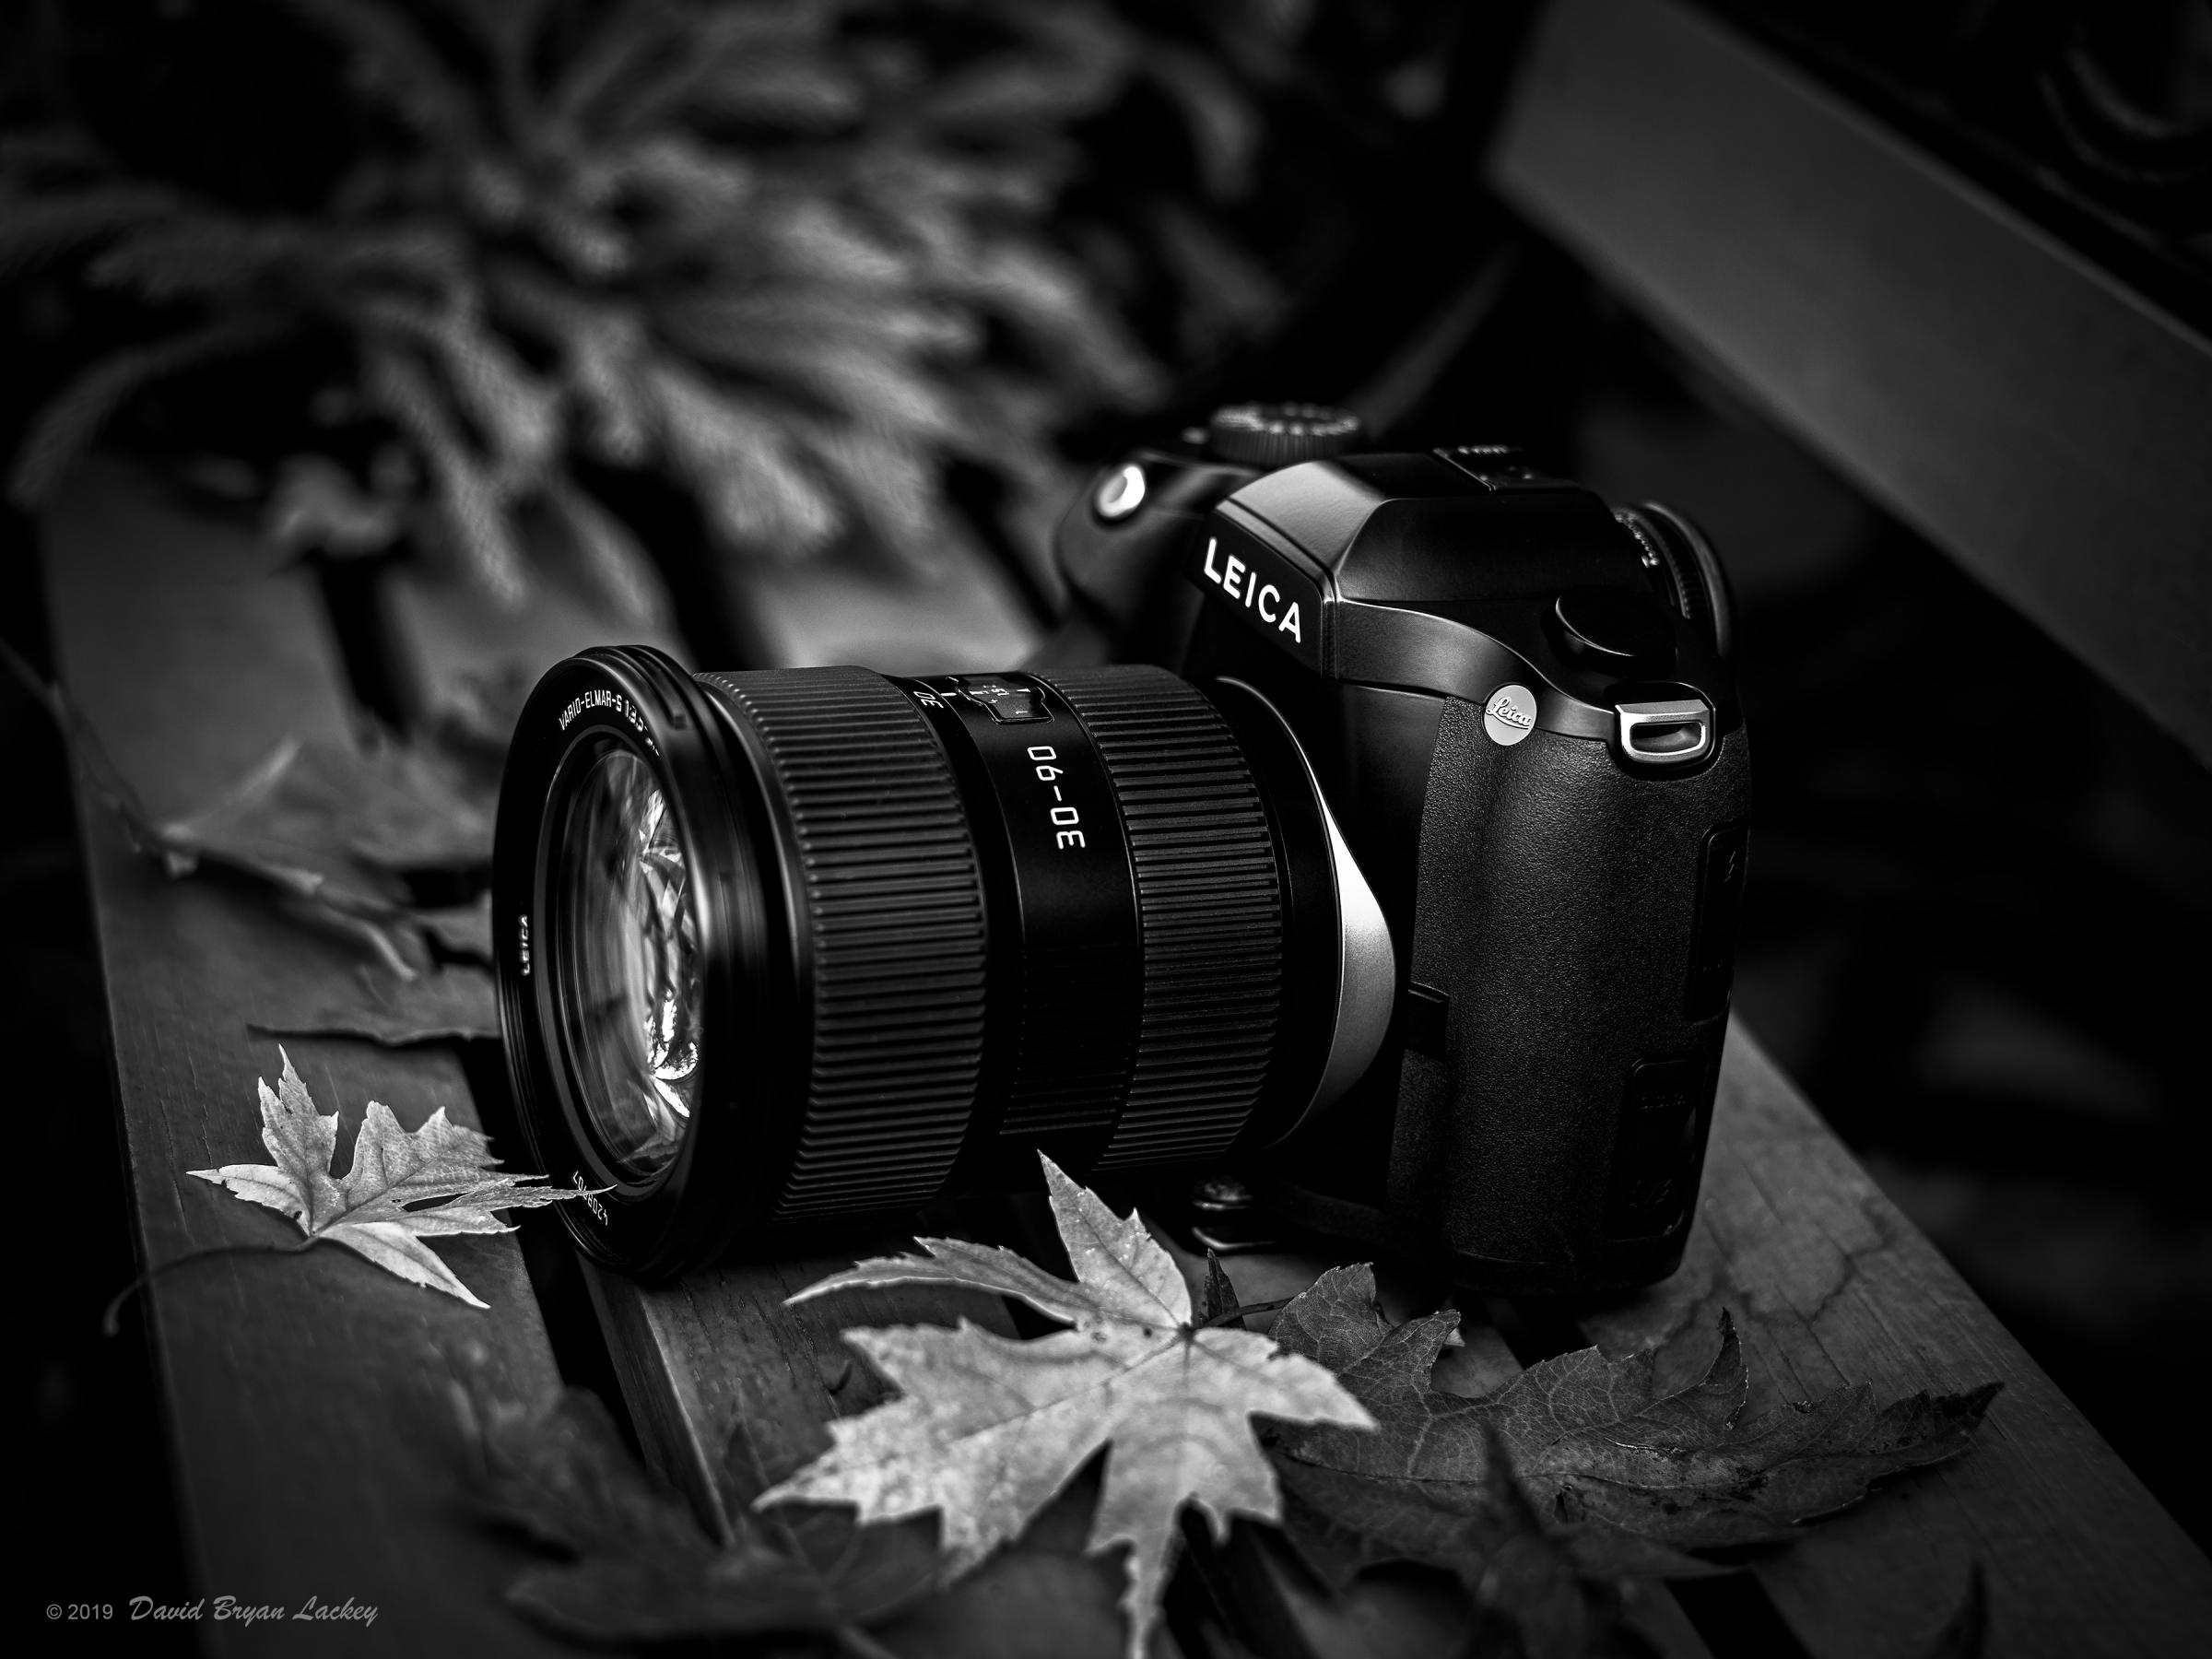 Leica S on Autumn Bench by dave.gt in dave.gt